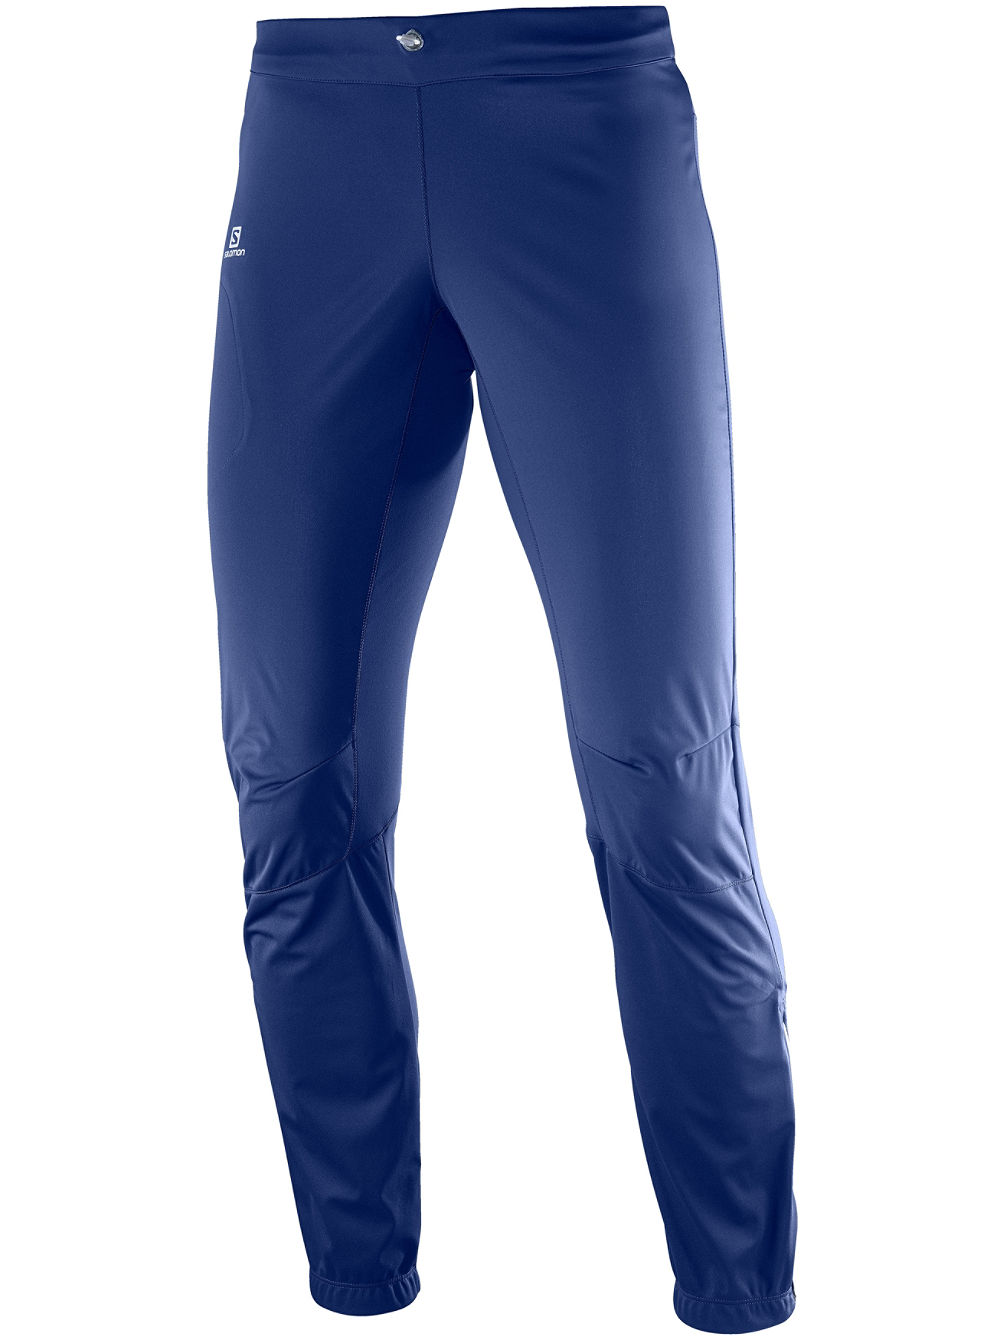 Lightning Softshell Pants